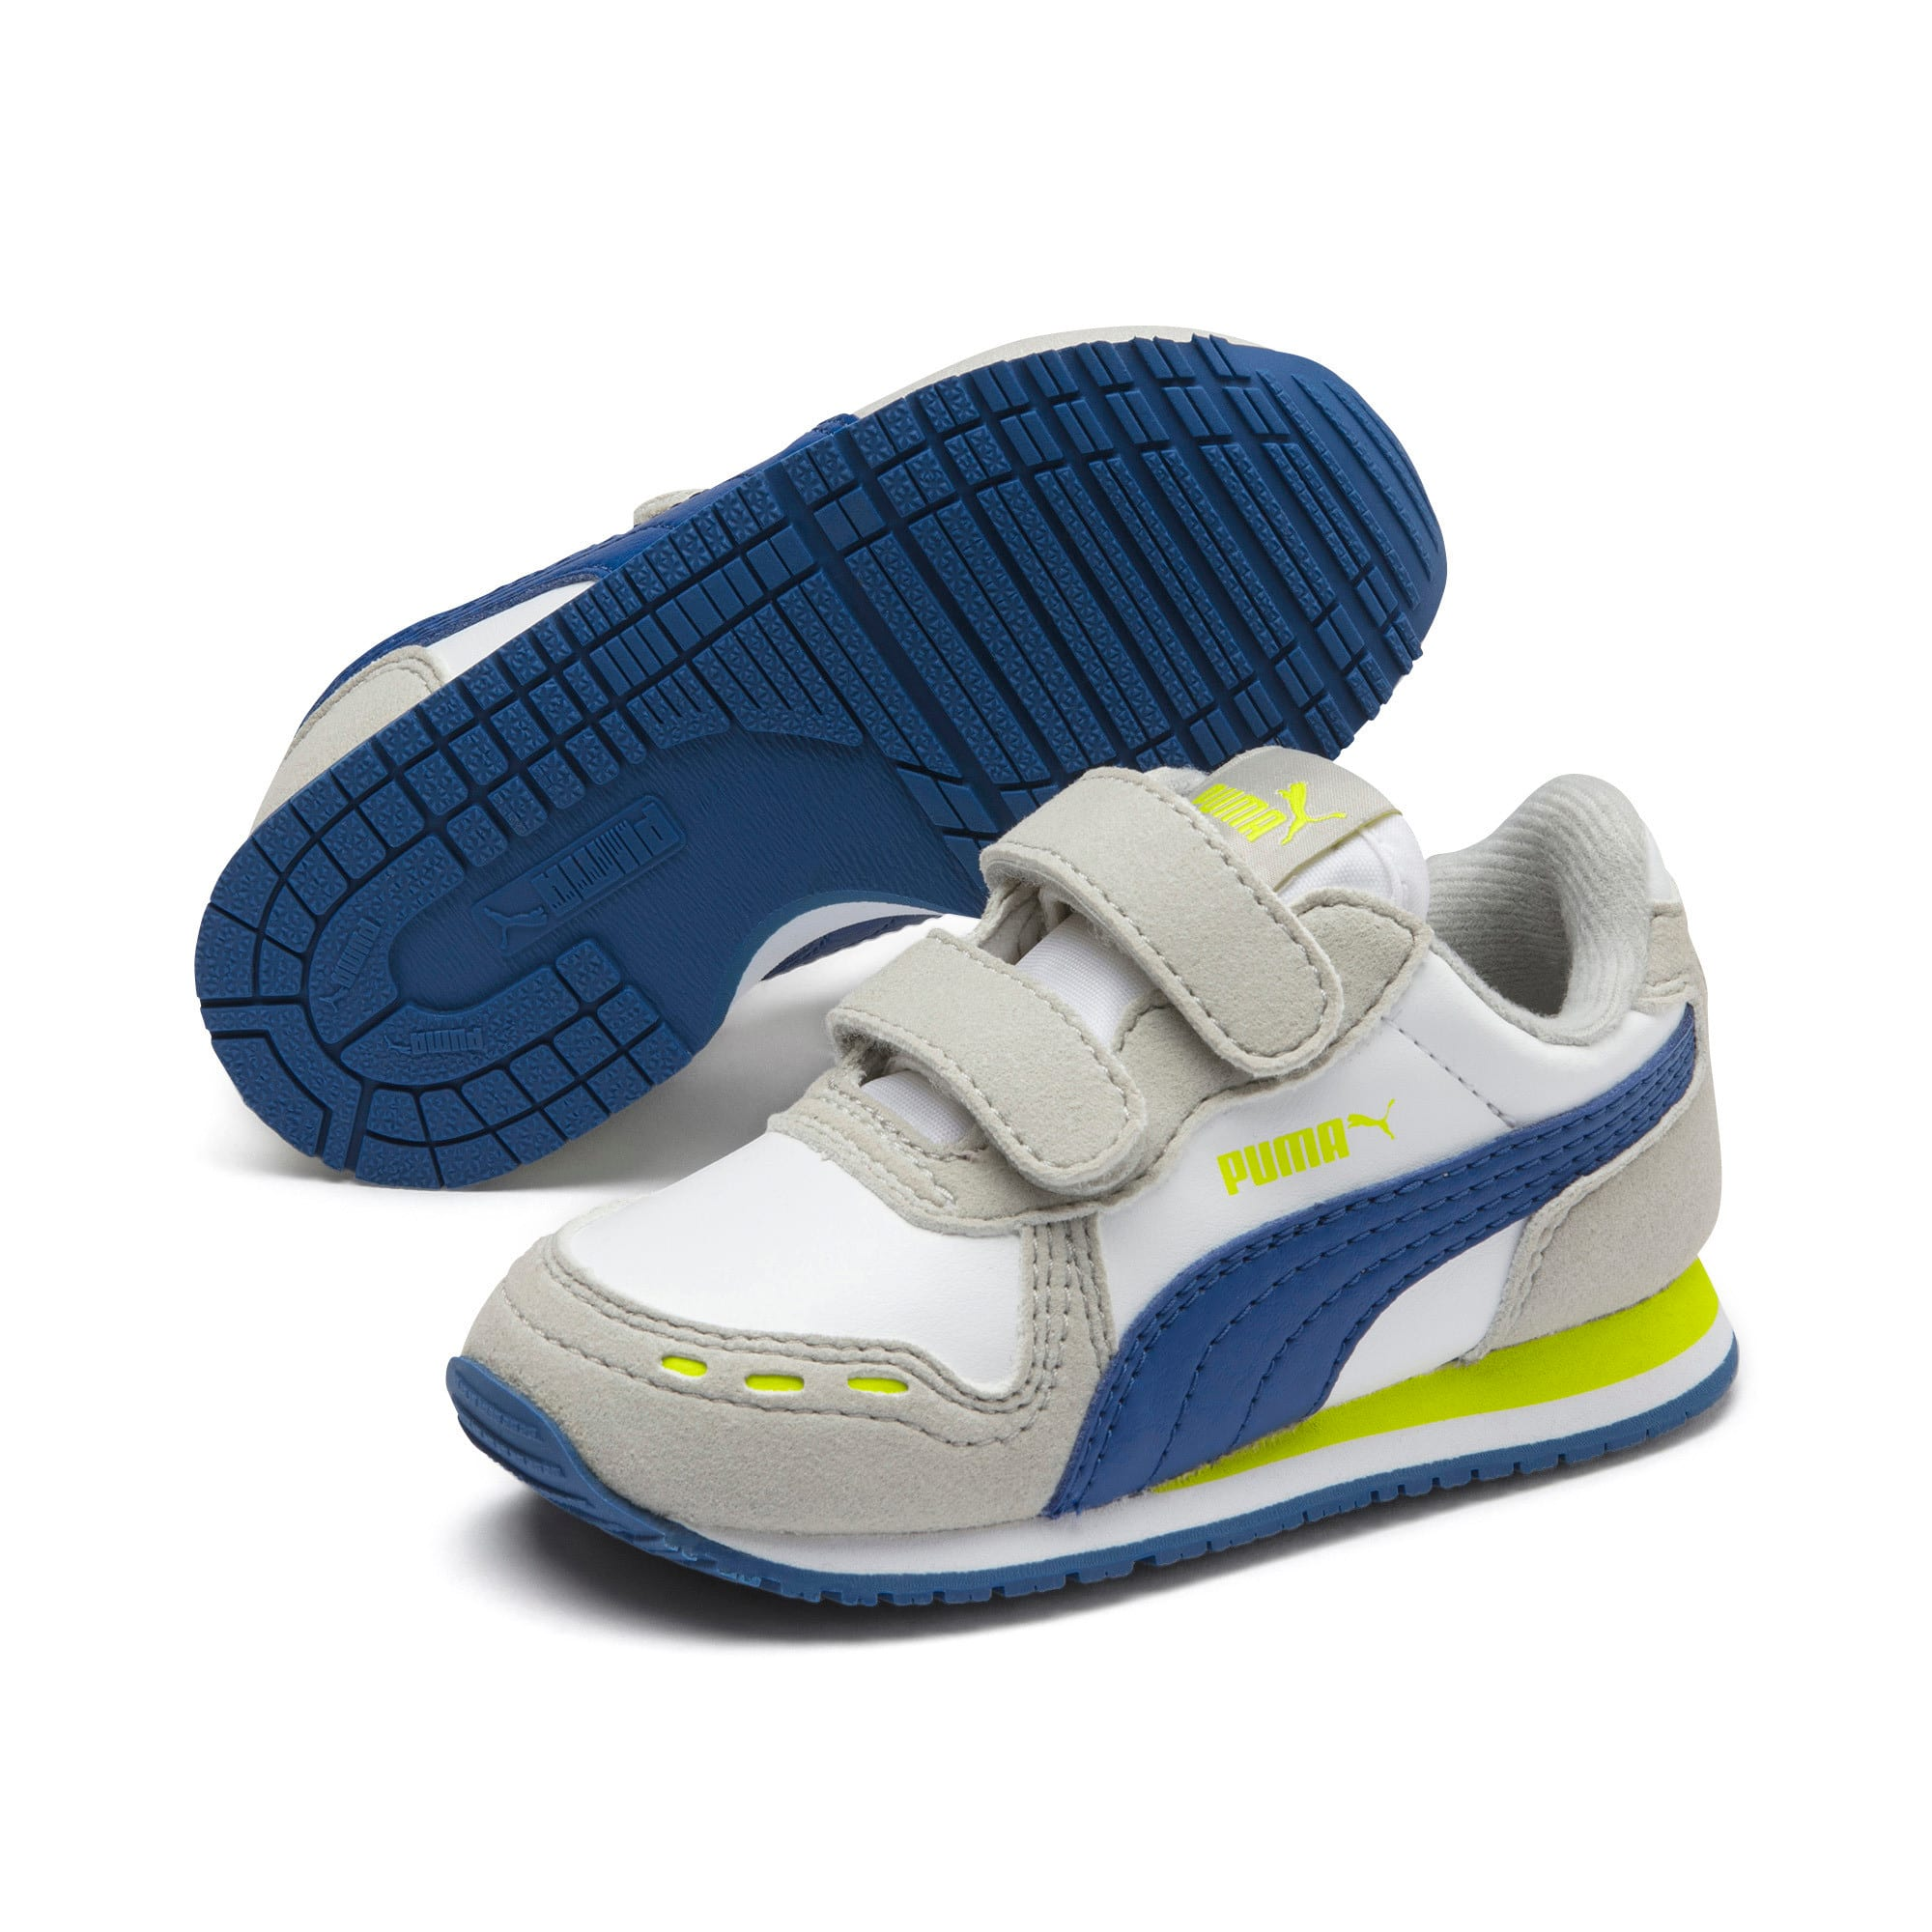 Thumbnail 2 of Cabana Racer SL Toddler Shoes, Puma White-Galaxy Blue, medium